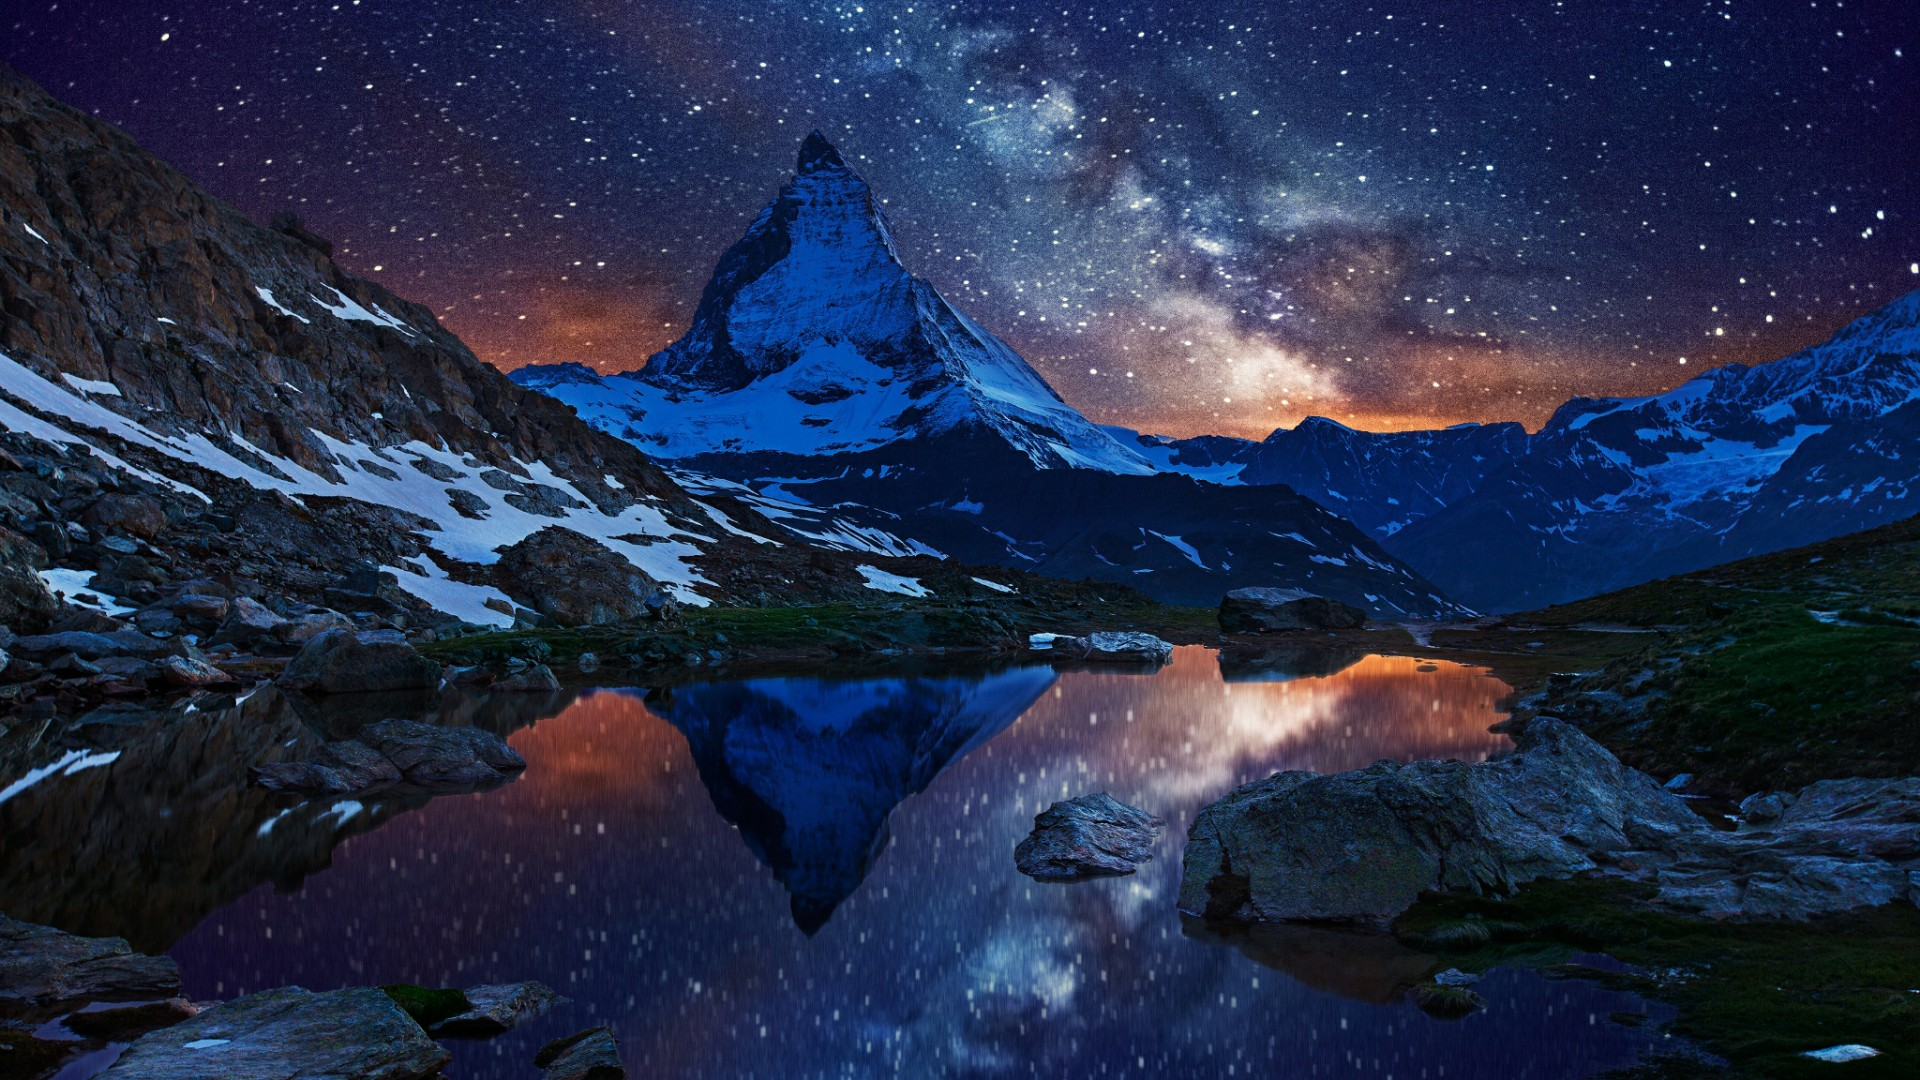 Milky Way over Matterhorn (Switzerland) wallpaper